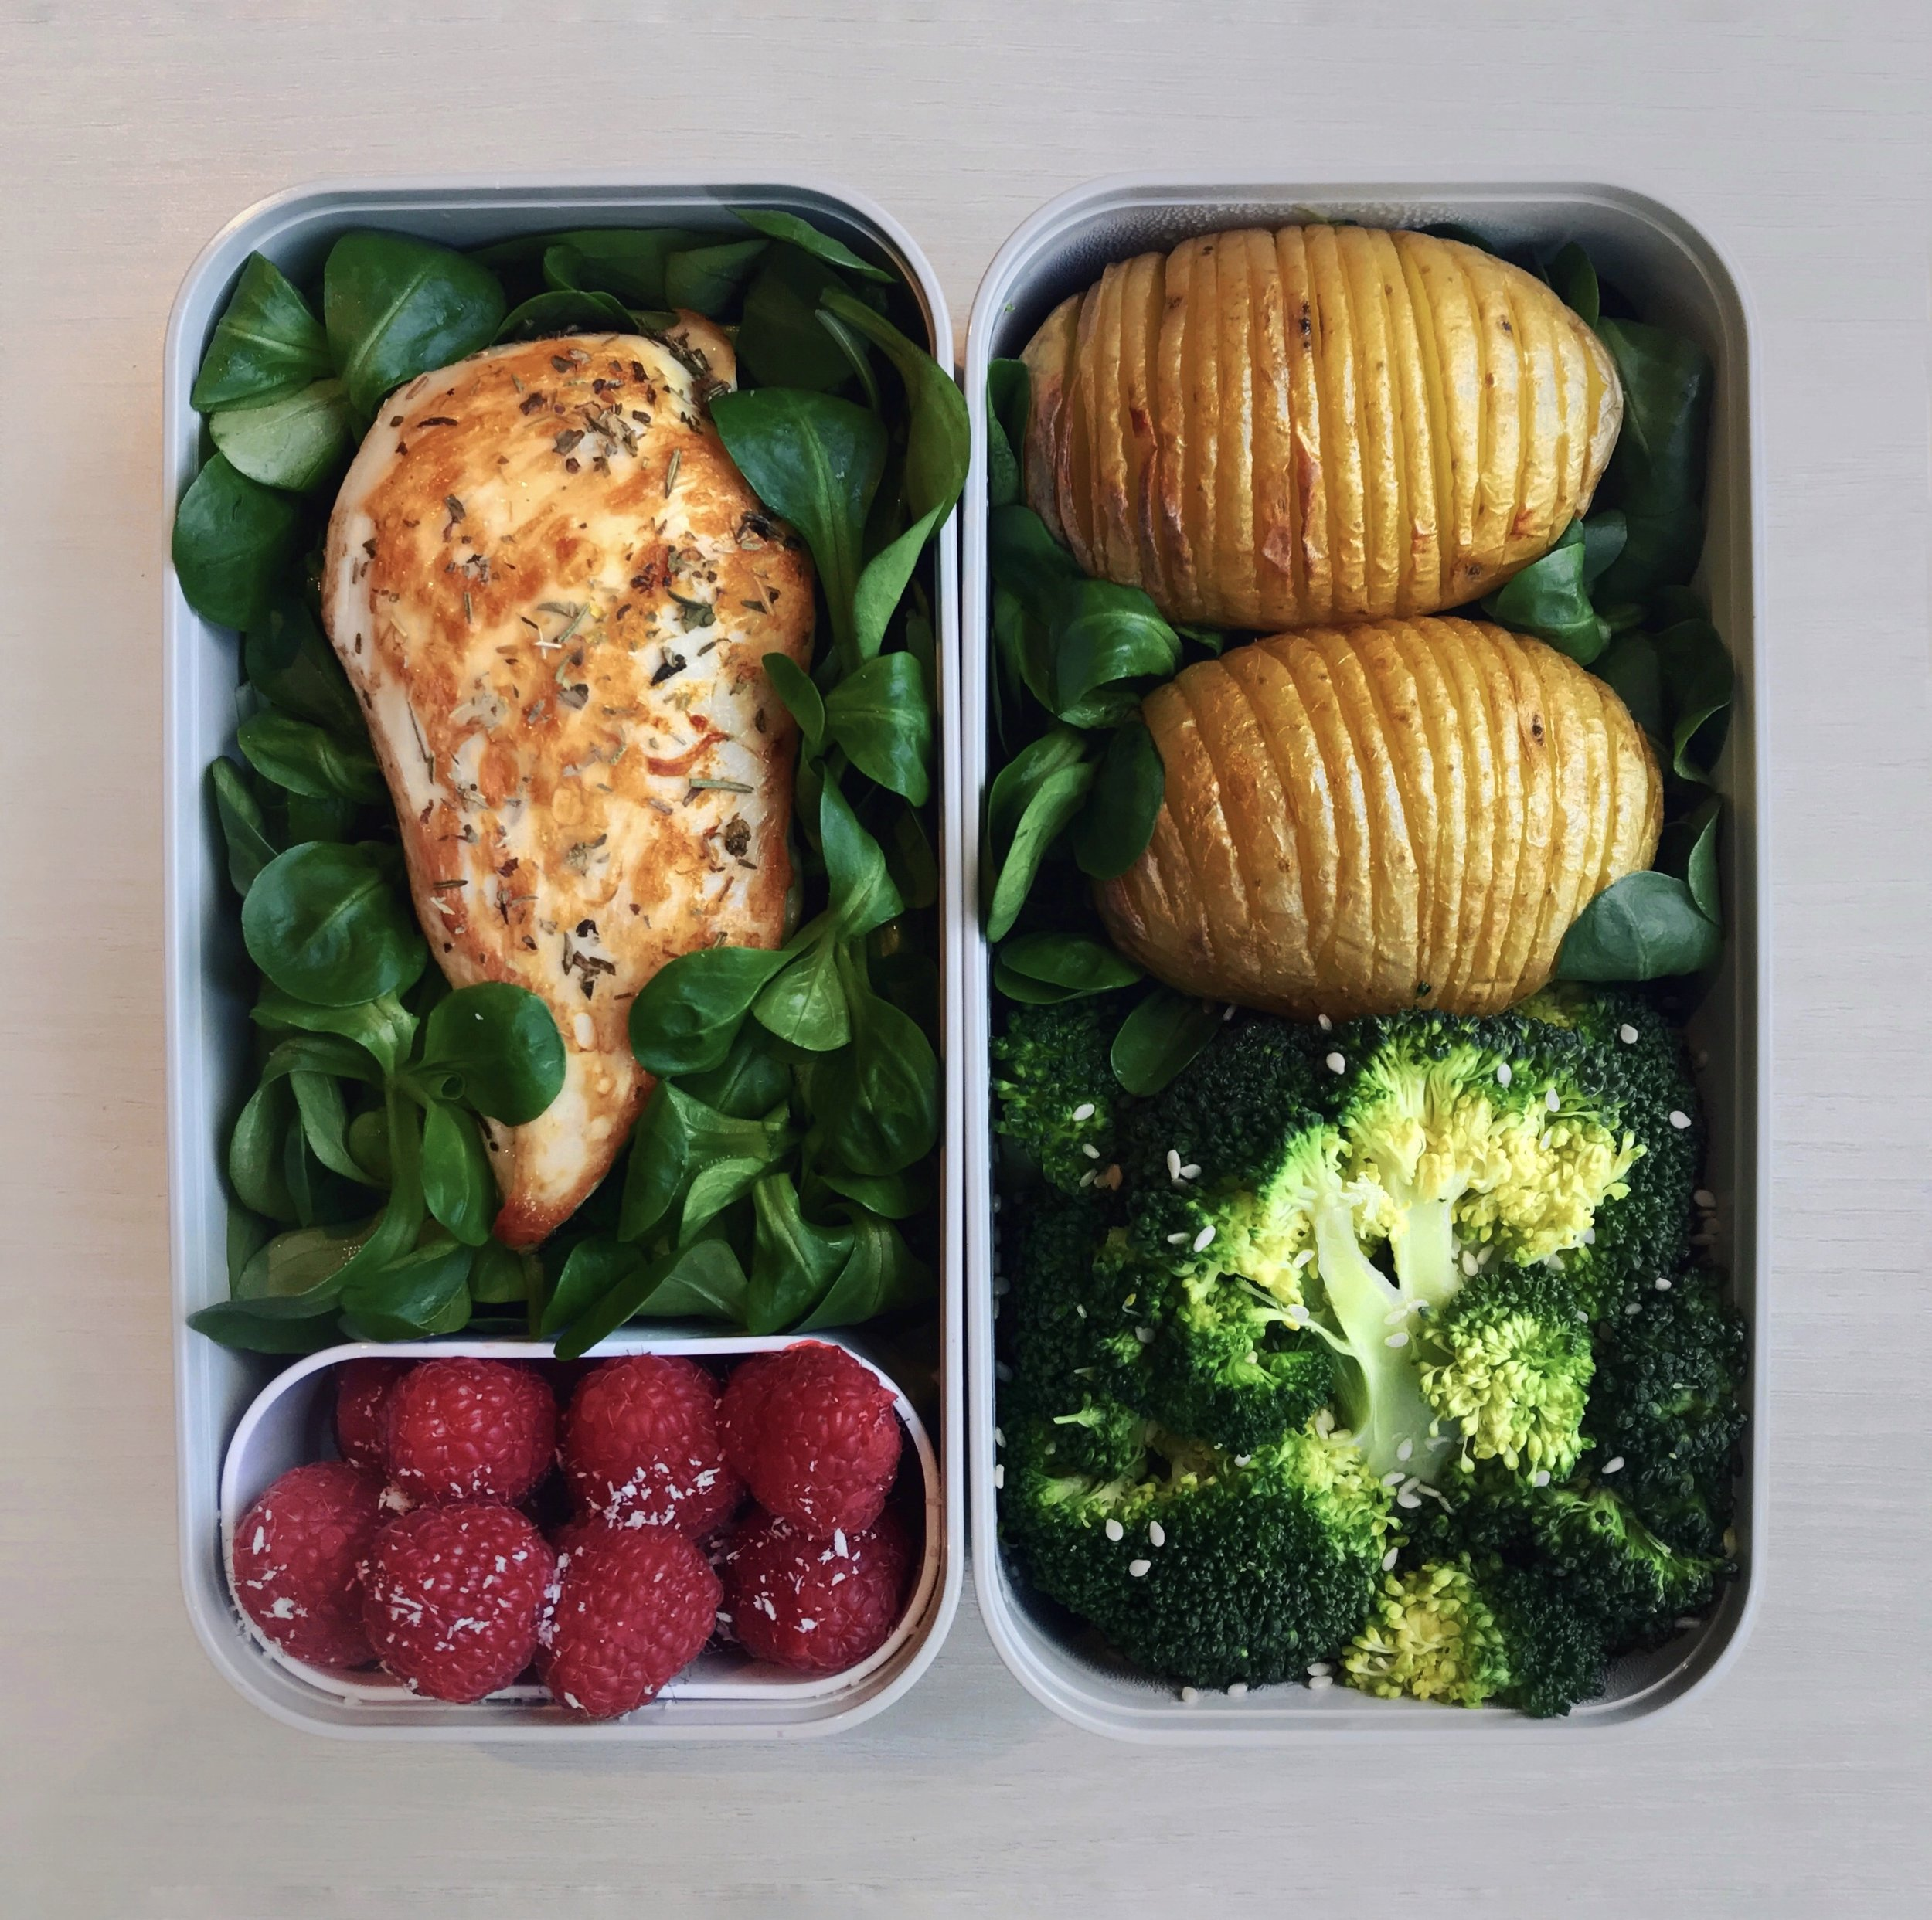 Grilled Chicken & Hasselback Potatoes